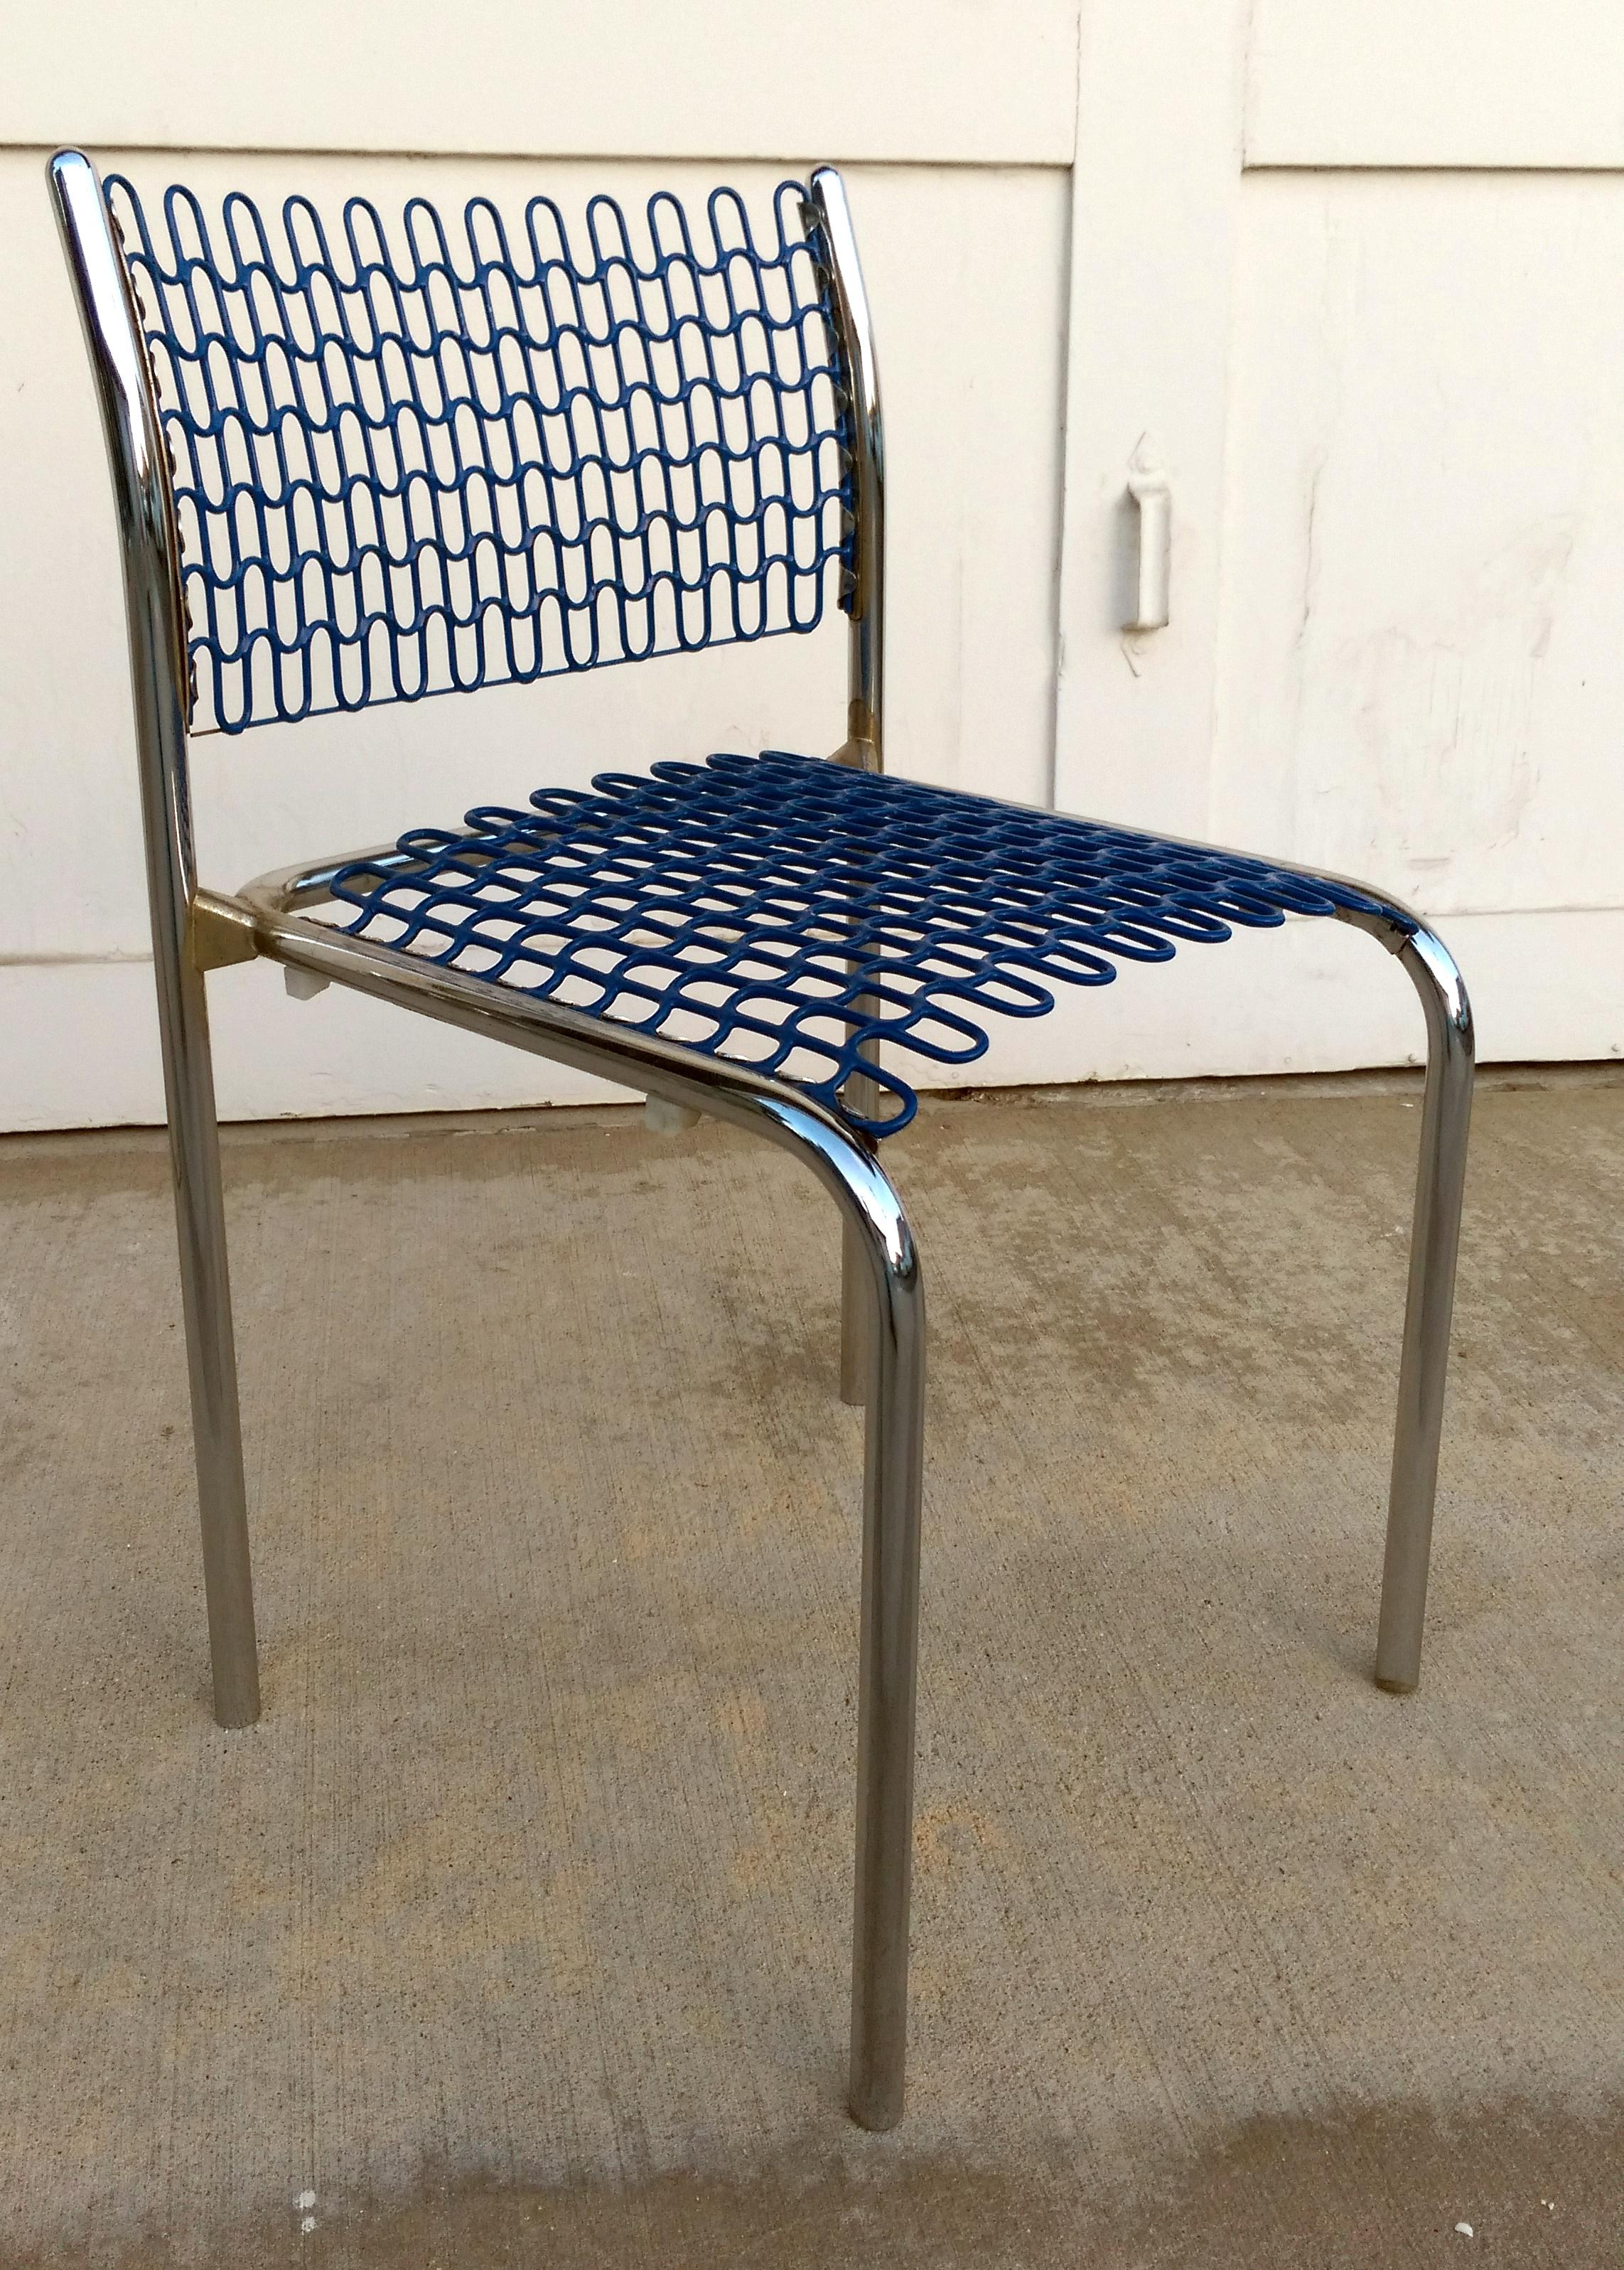 david rowland metal chair acrylic clear thonet sof tech side chairs by set of 6 chairish for sale